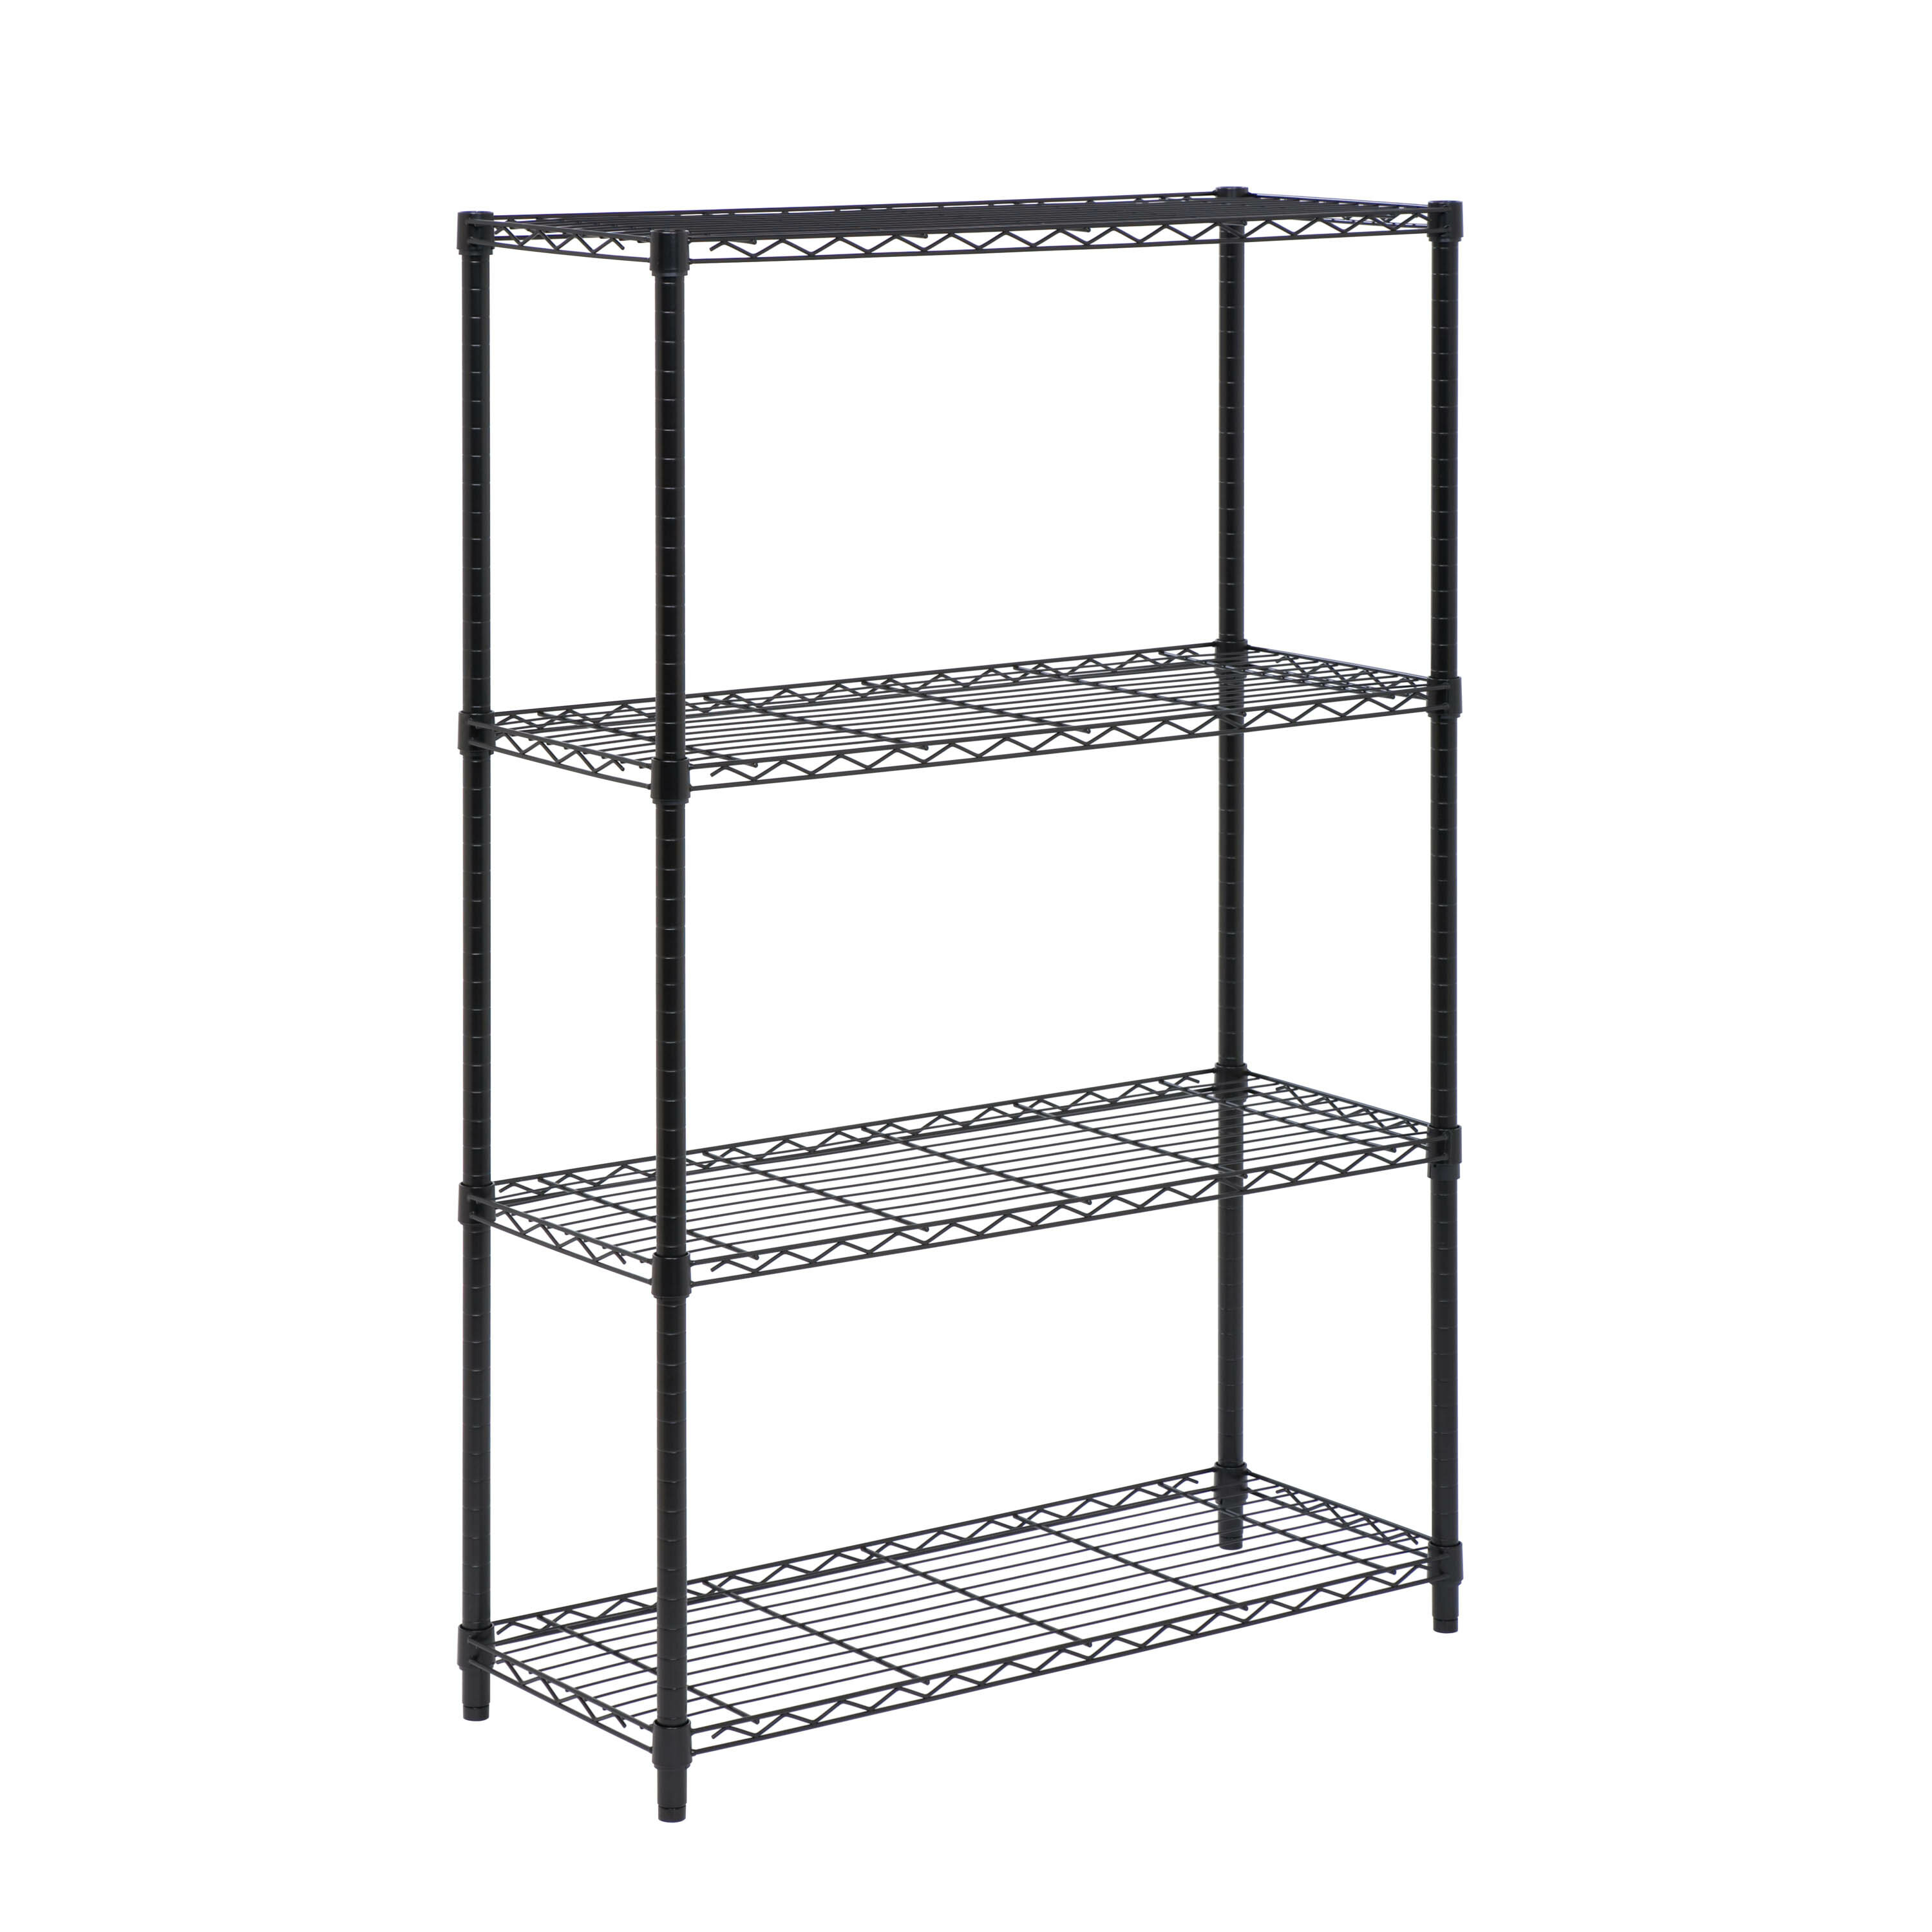 at home mystar buy steel shop boltless limited free level colour special shelves best shelf shelving rack bookcases